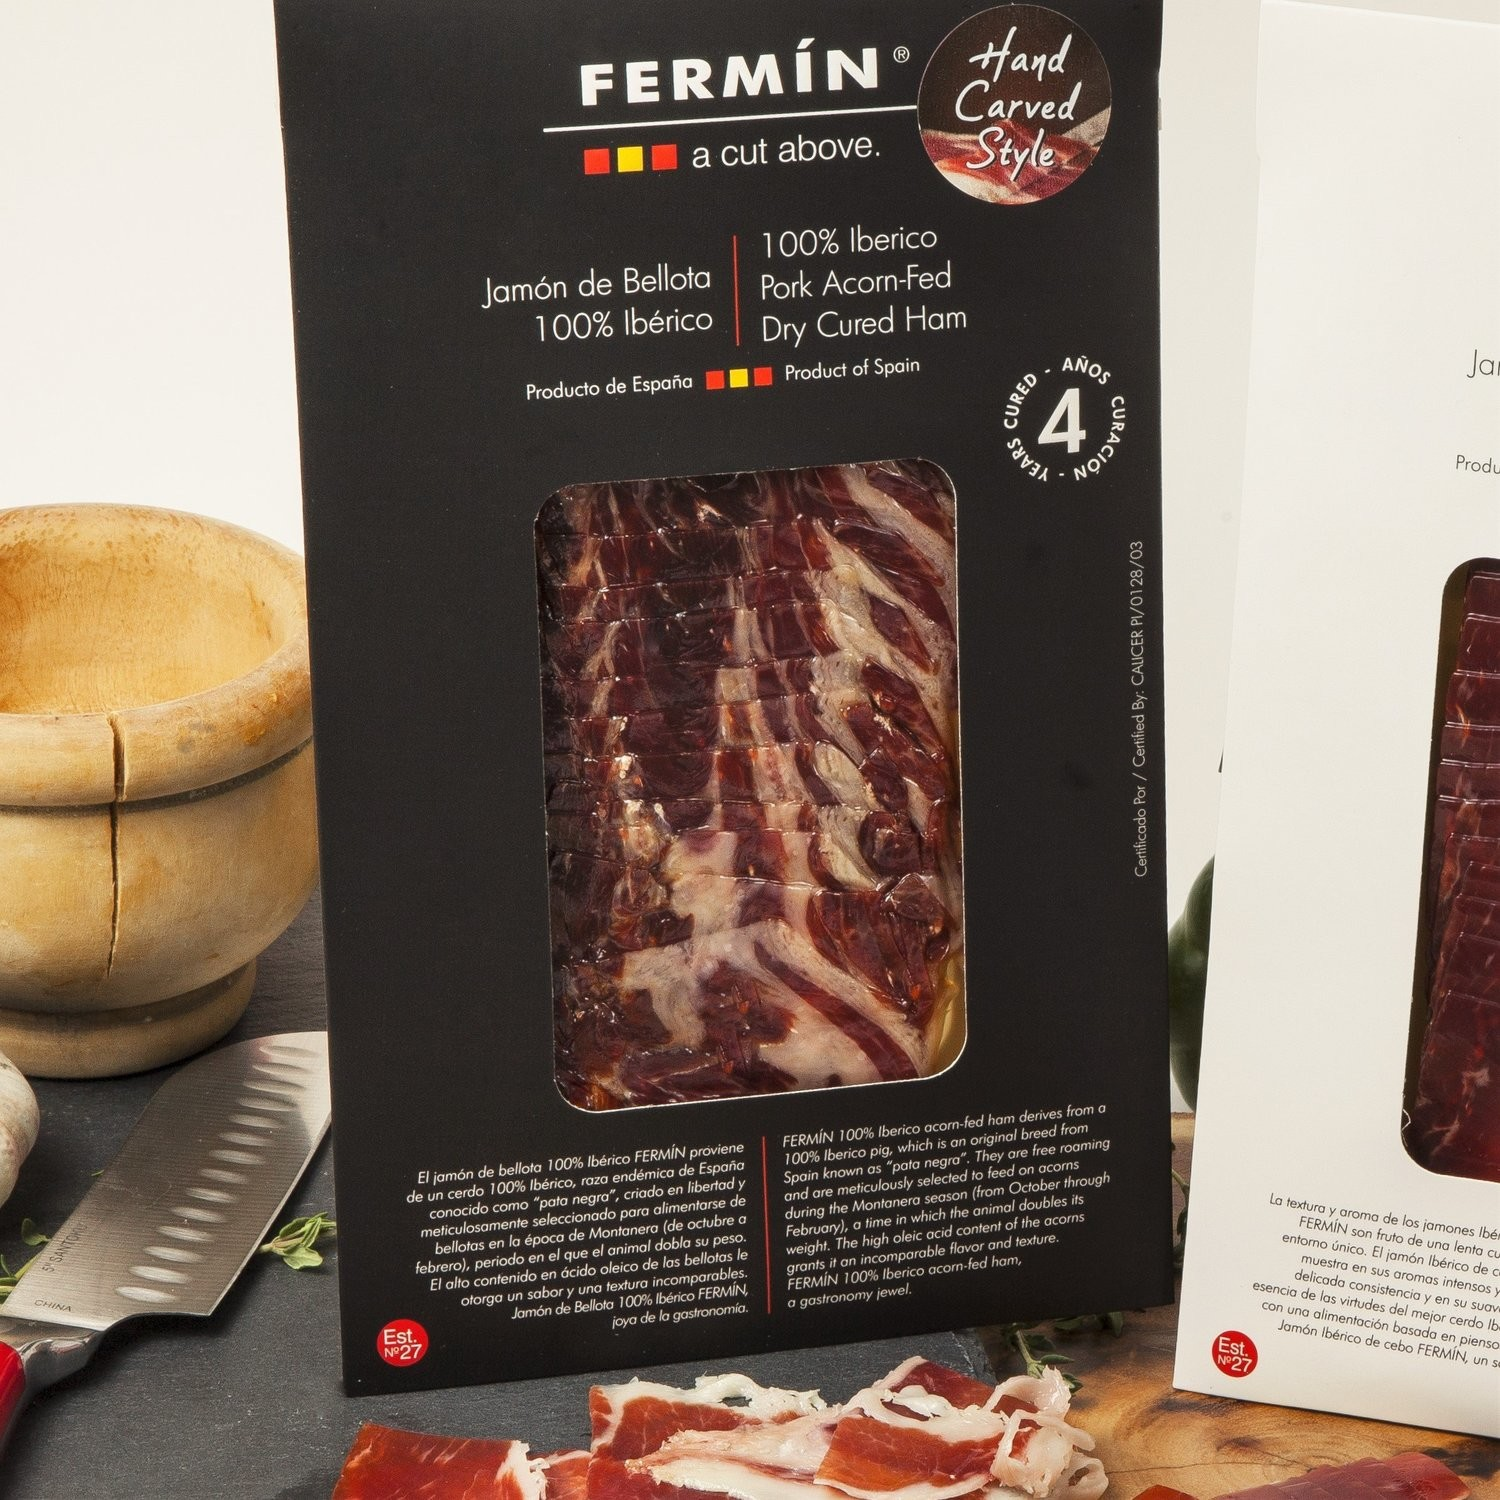 Sliced Iberico Jamon De Bellota (2 oz) (IMPORTED)